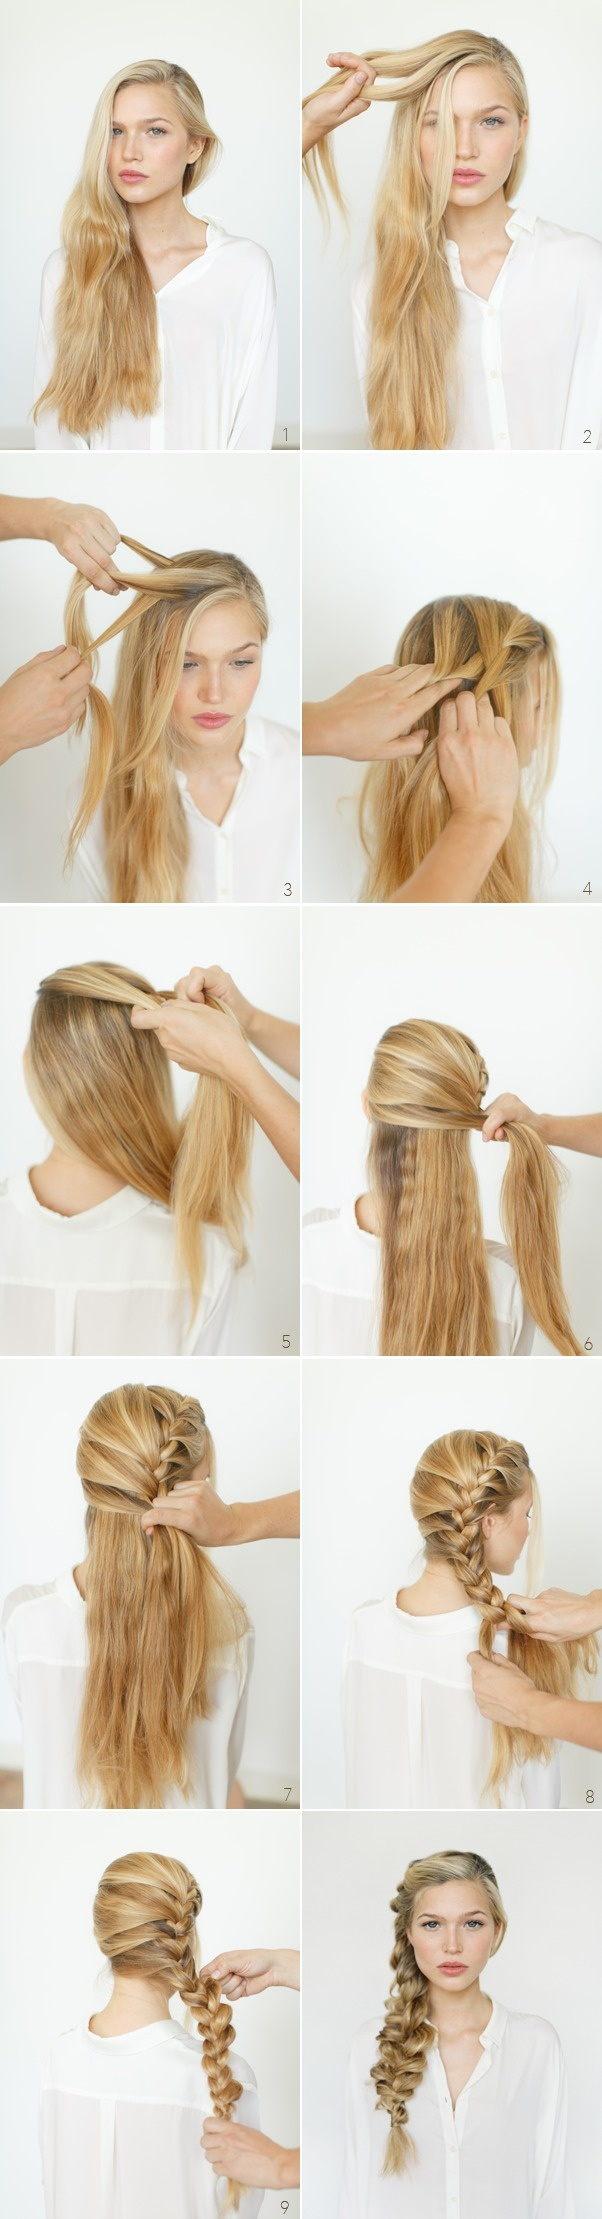 20 Easy Hairstyles For Women Who\'ve Got No Time, #7 Is A Game ...